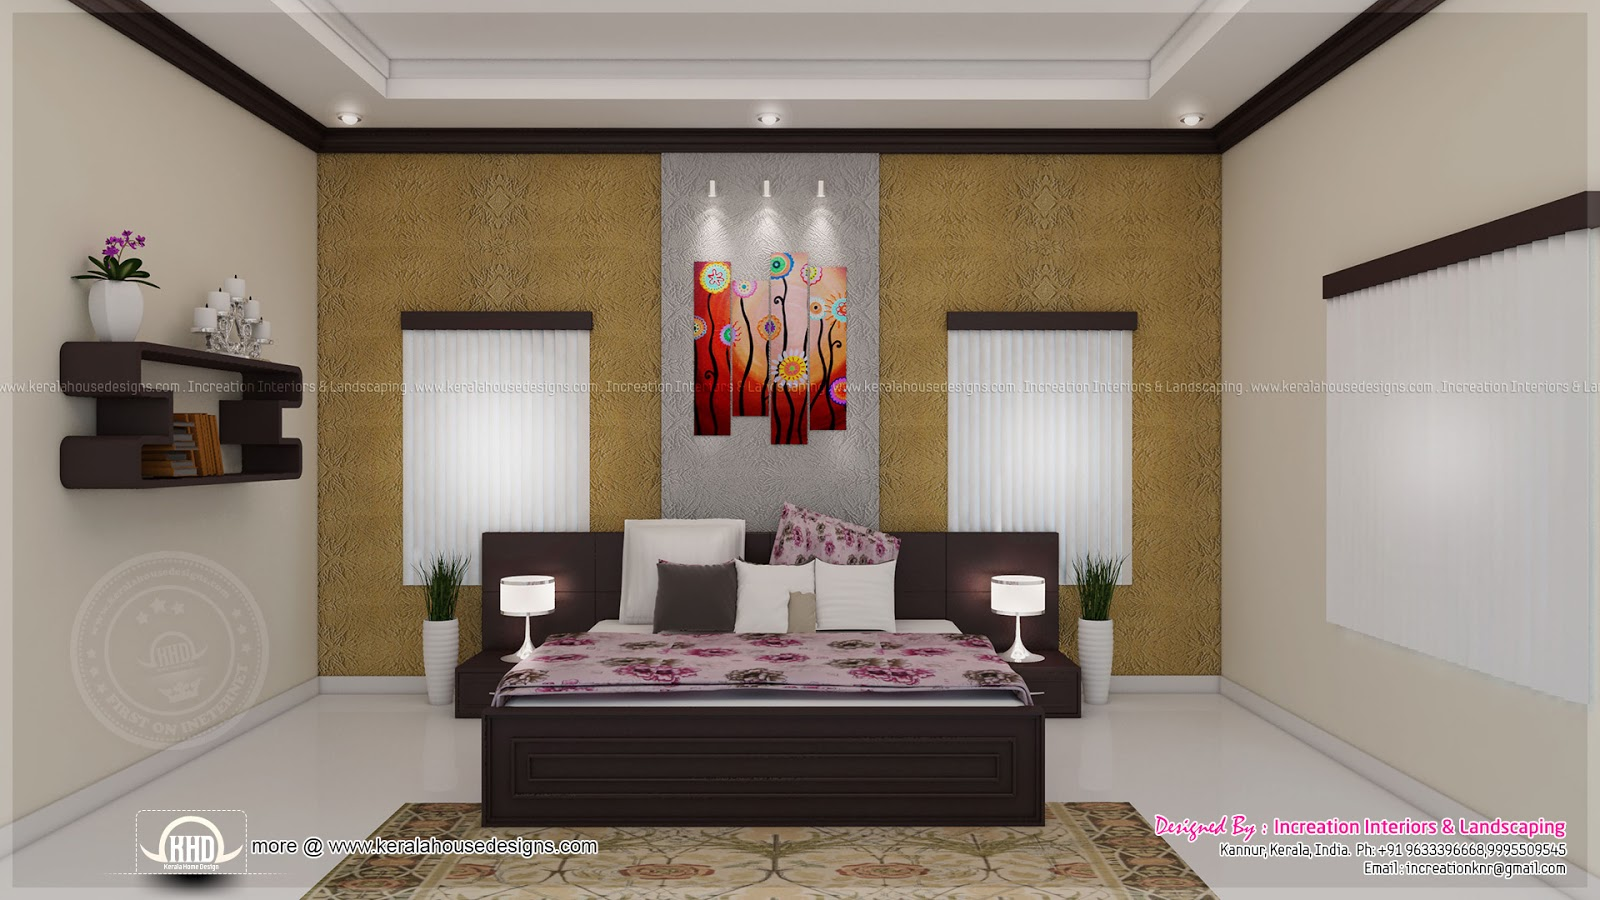 House interior ideas in 3d rendering kerala home design for Picture of interior designs of house